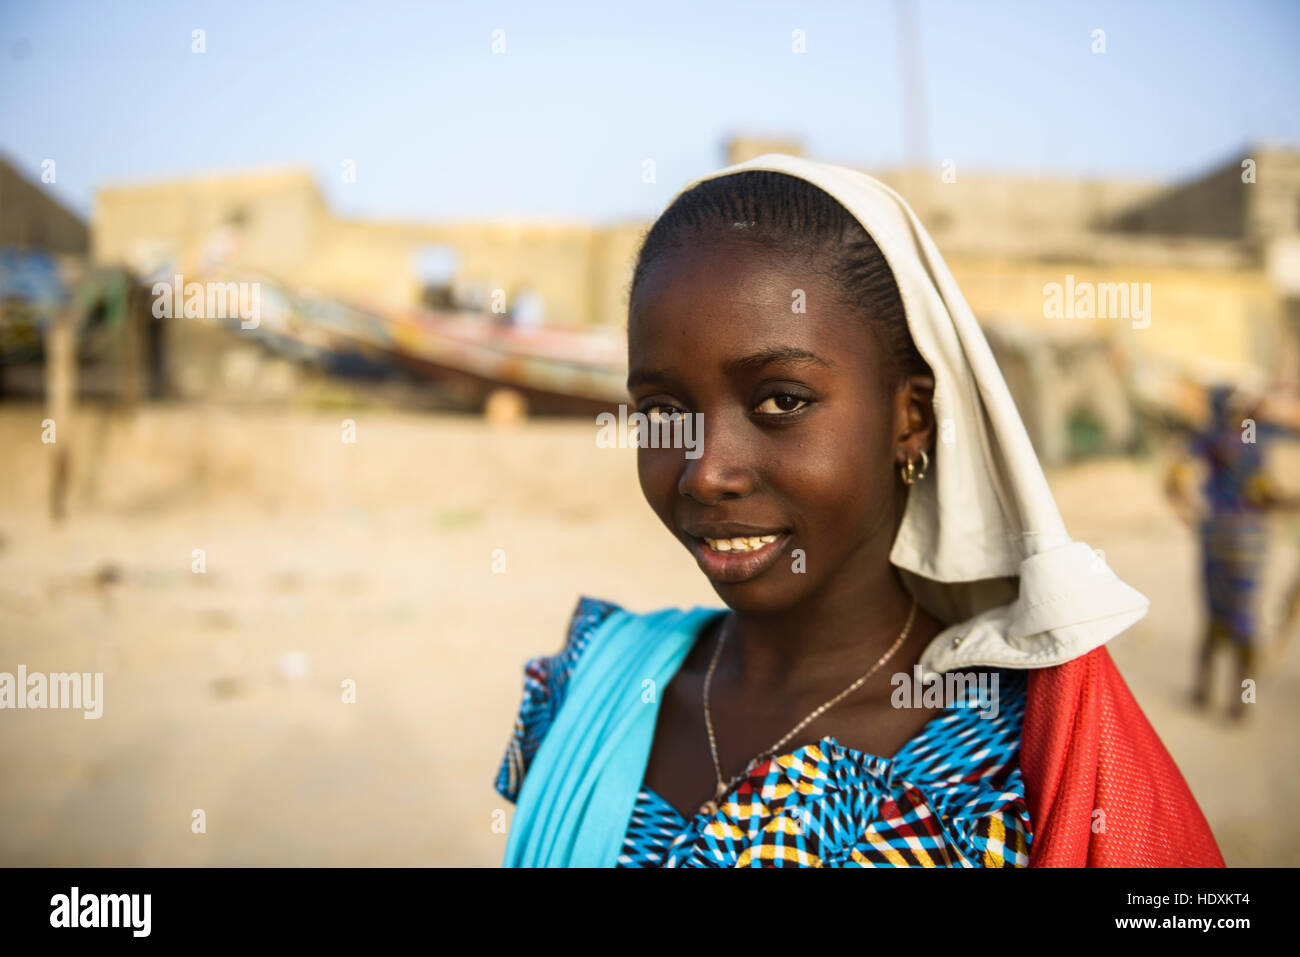 Senegalese People Stock Photos & Senegalese People Stock Images - Alamy